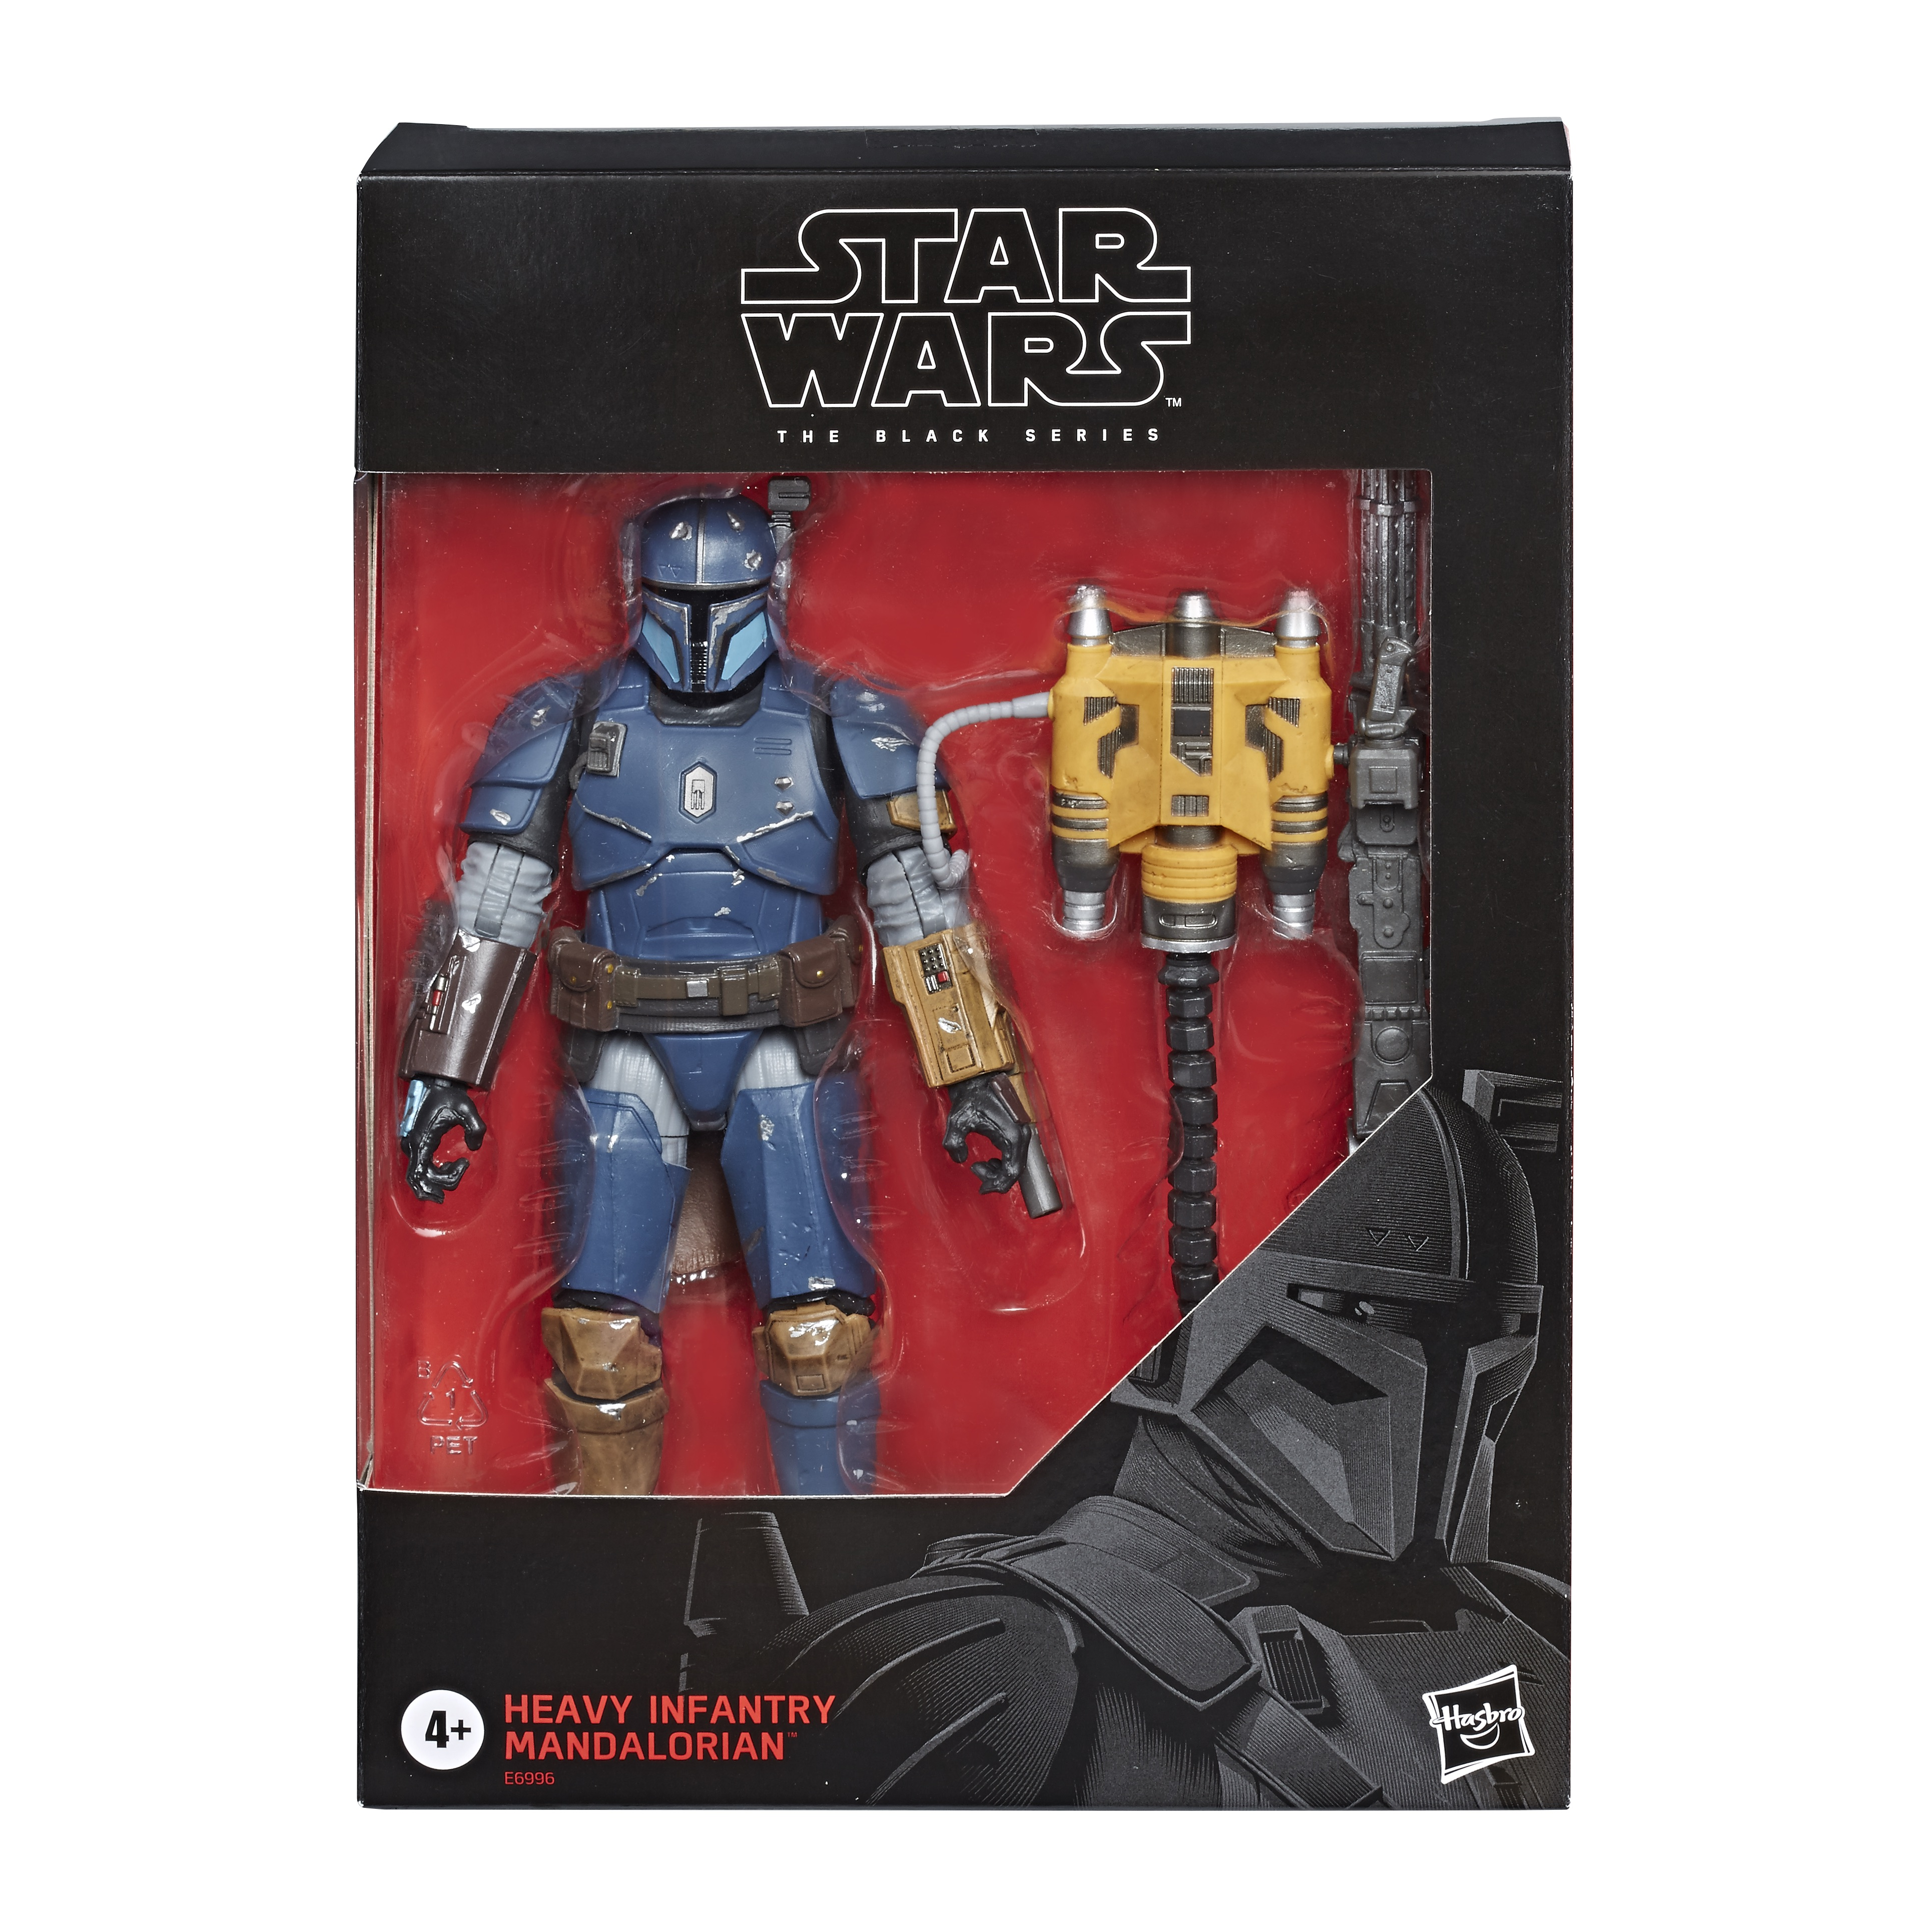 Star Wars The Black Series Heavy Infantry Mandalorian E6996EU4 5010993623624